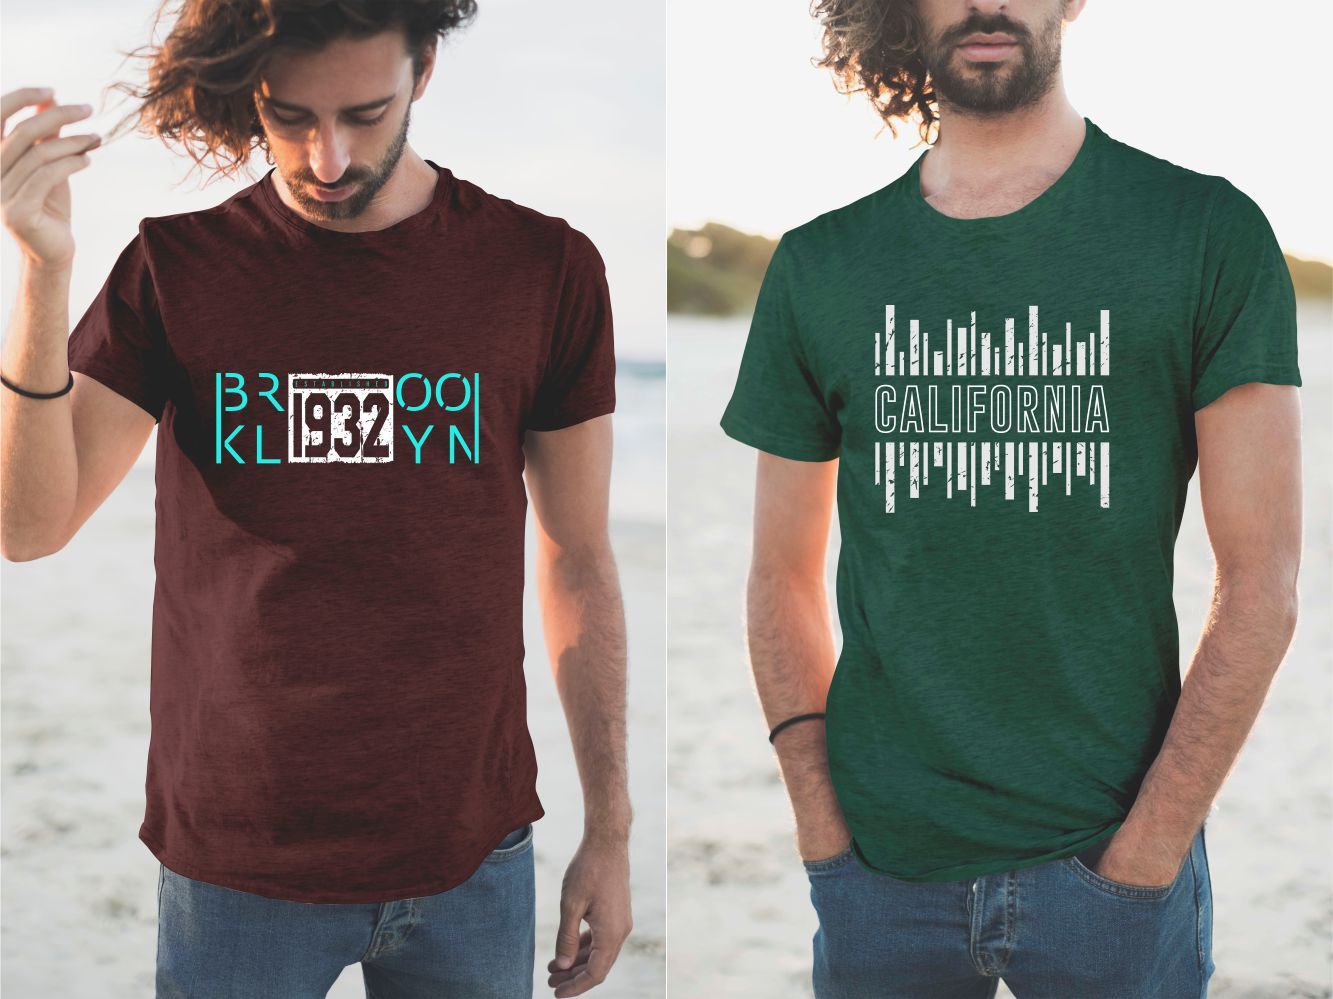 Burgundy and green T-shirts with a laconic and stylish design.